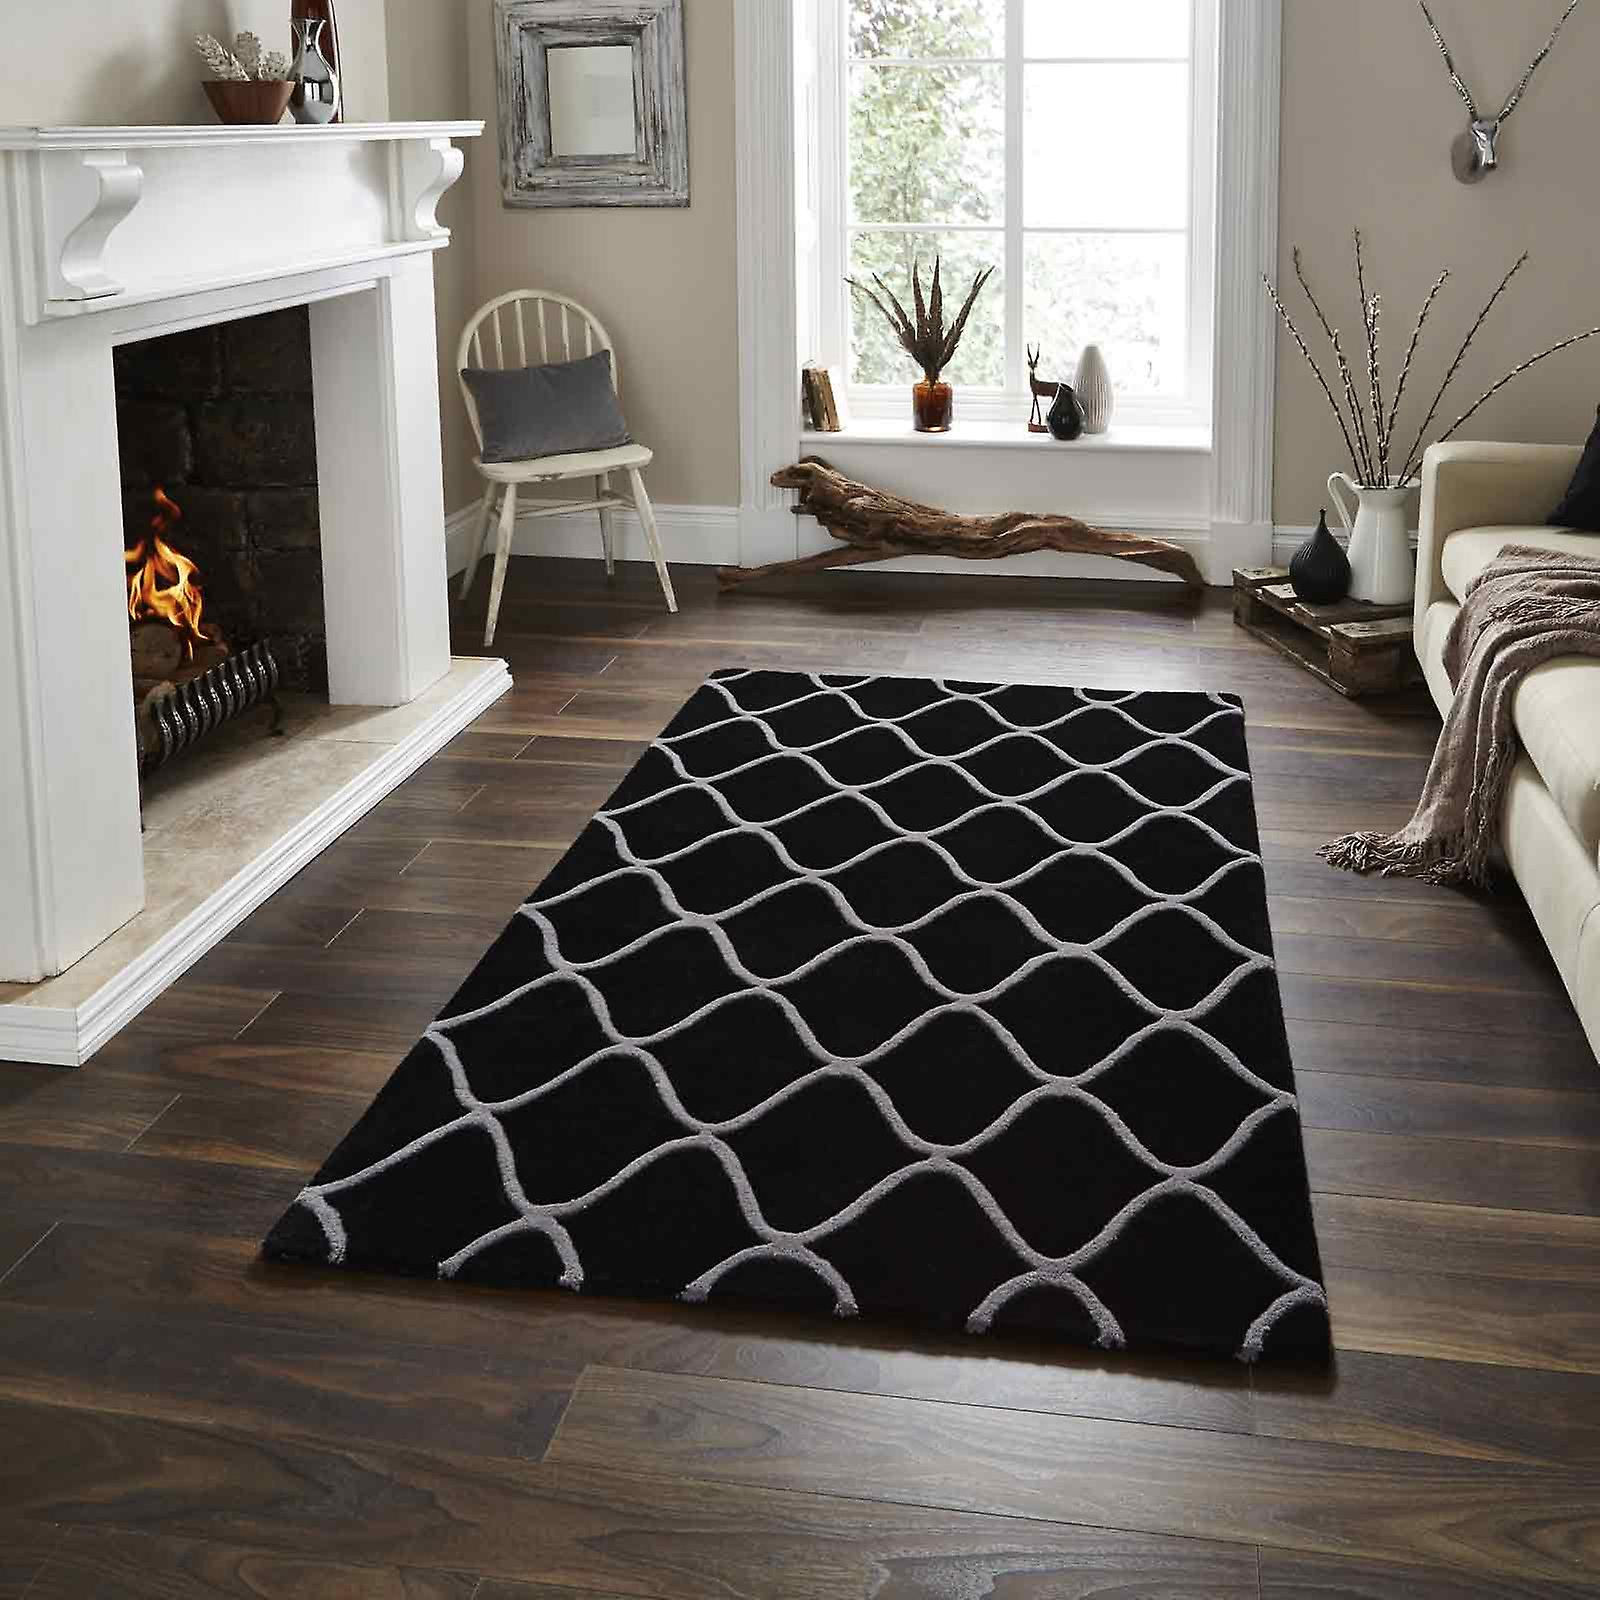 Elements Rugs El65 Hand Made Wool In Black